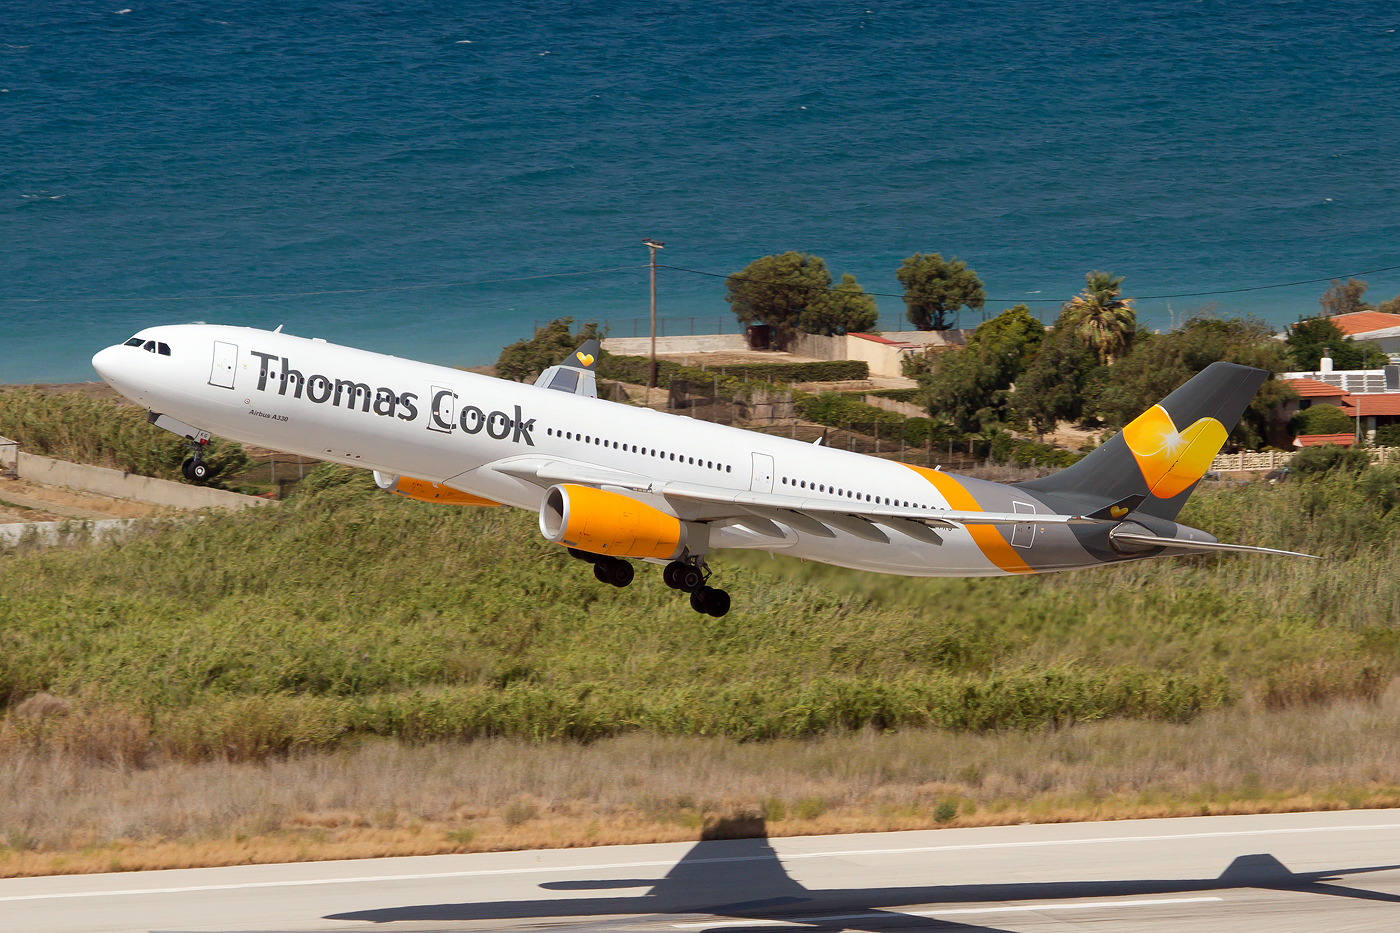 Et af Thomas Cook Airlines Scandinavias Airbus A330-300 fly letter fra Rhodos. Foto: Fabrizio Gandolfo / Wikimedia Commons.